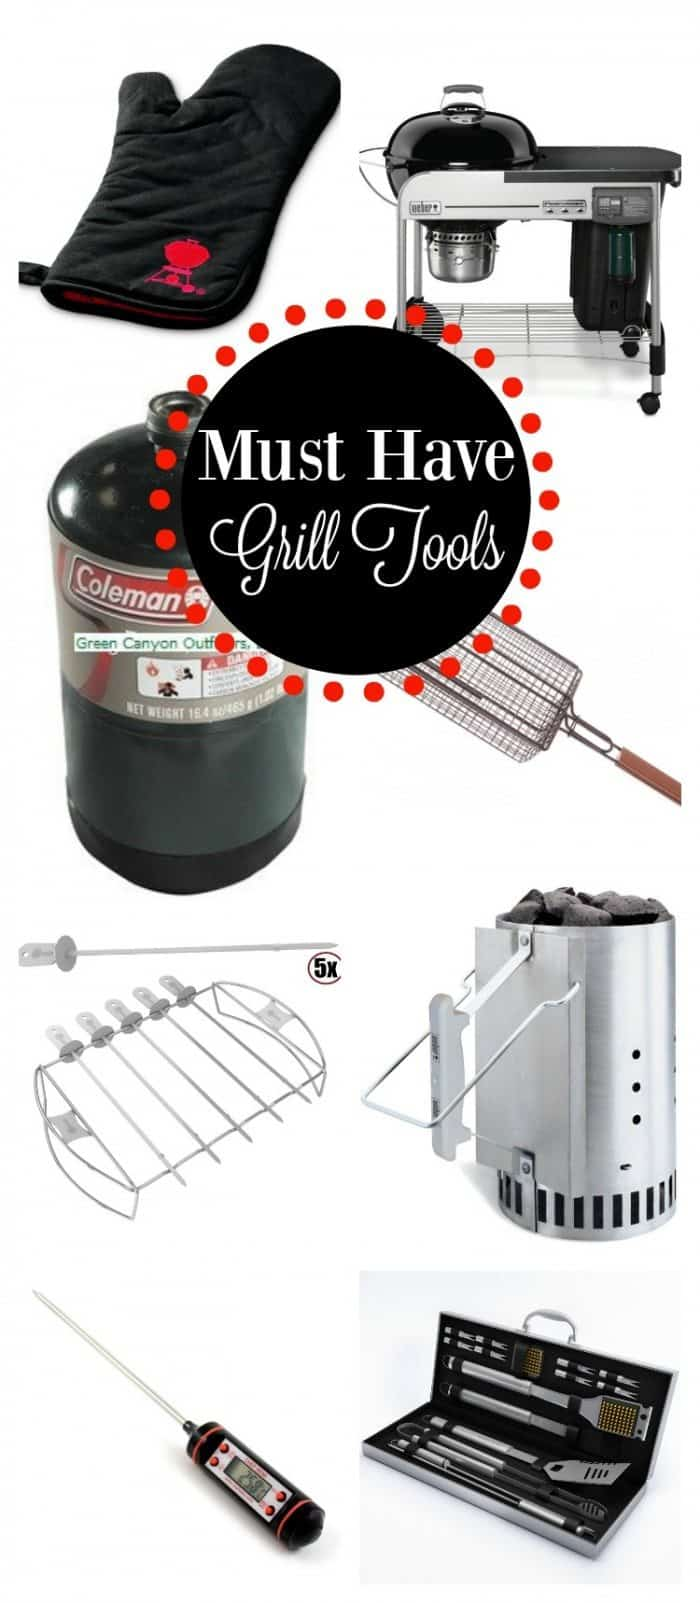 Does the warm weather have you itching to grill We put together our Must Have Grill Tools to make it the best grill season ever.